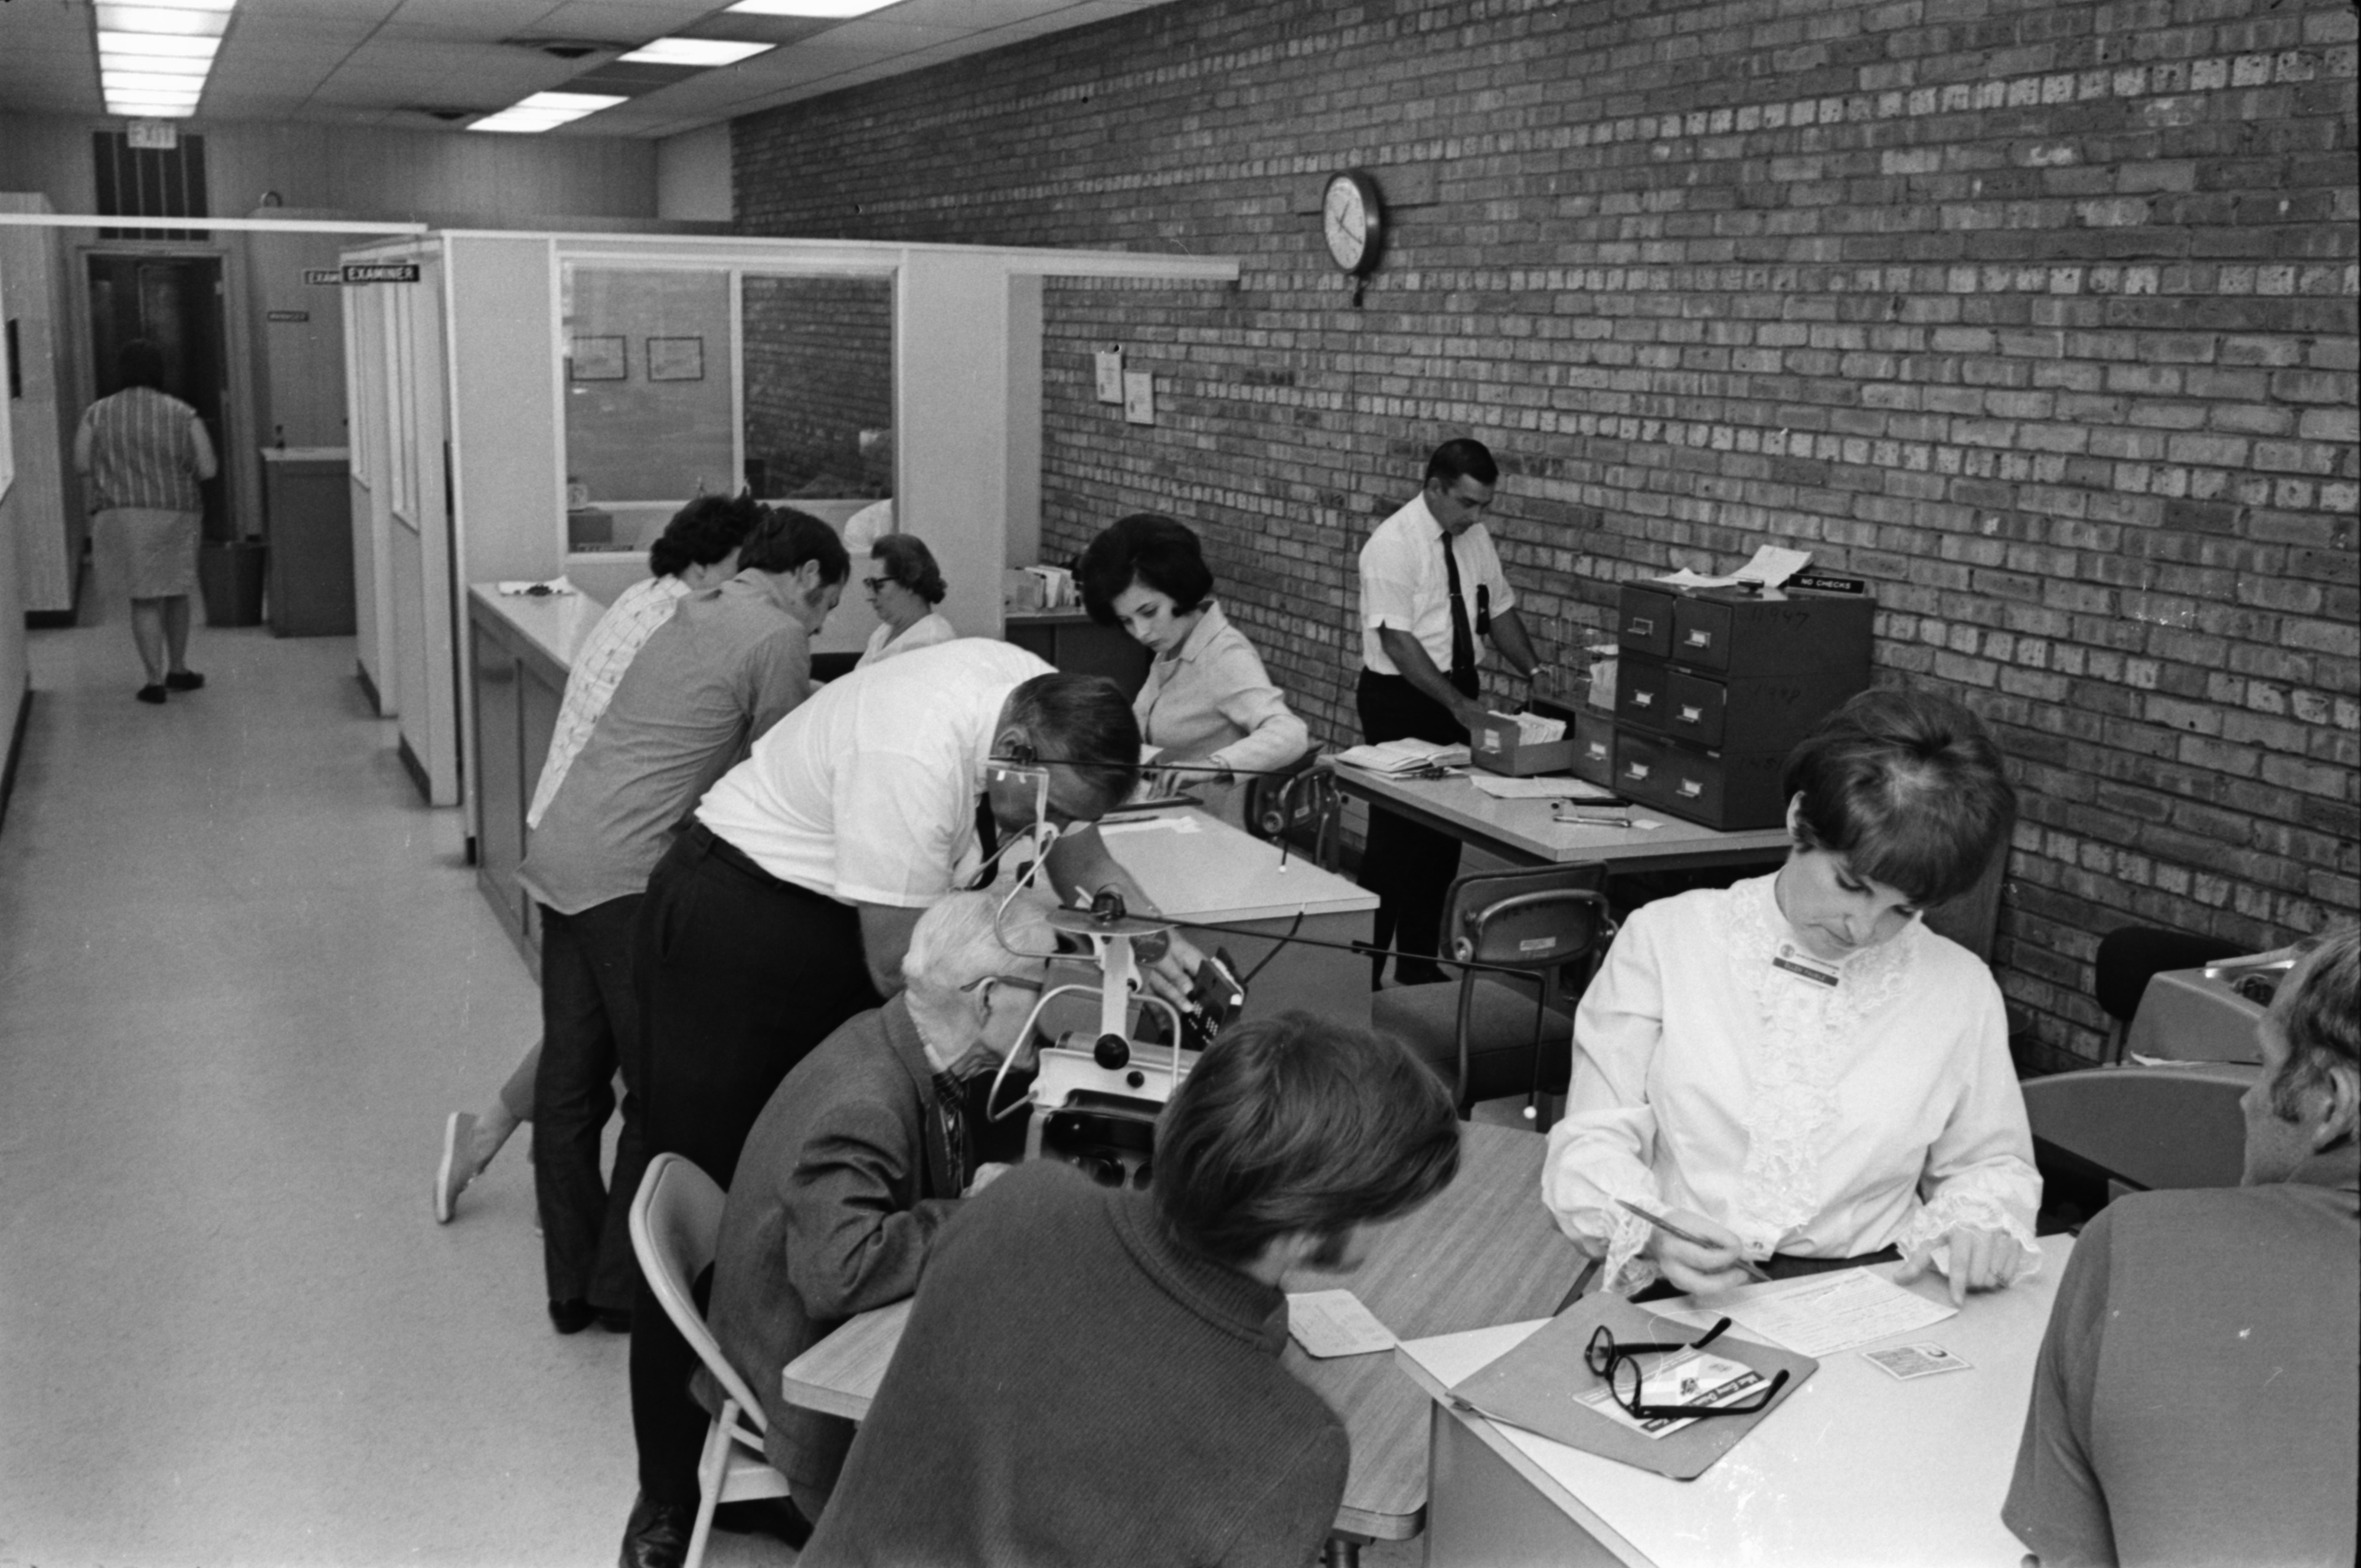 Driver's Licensing Bureau Busy, September 1969 image